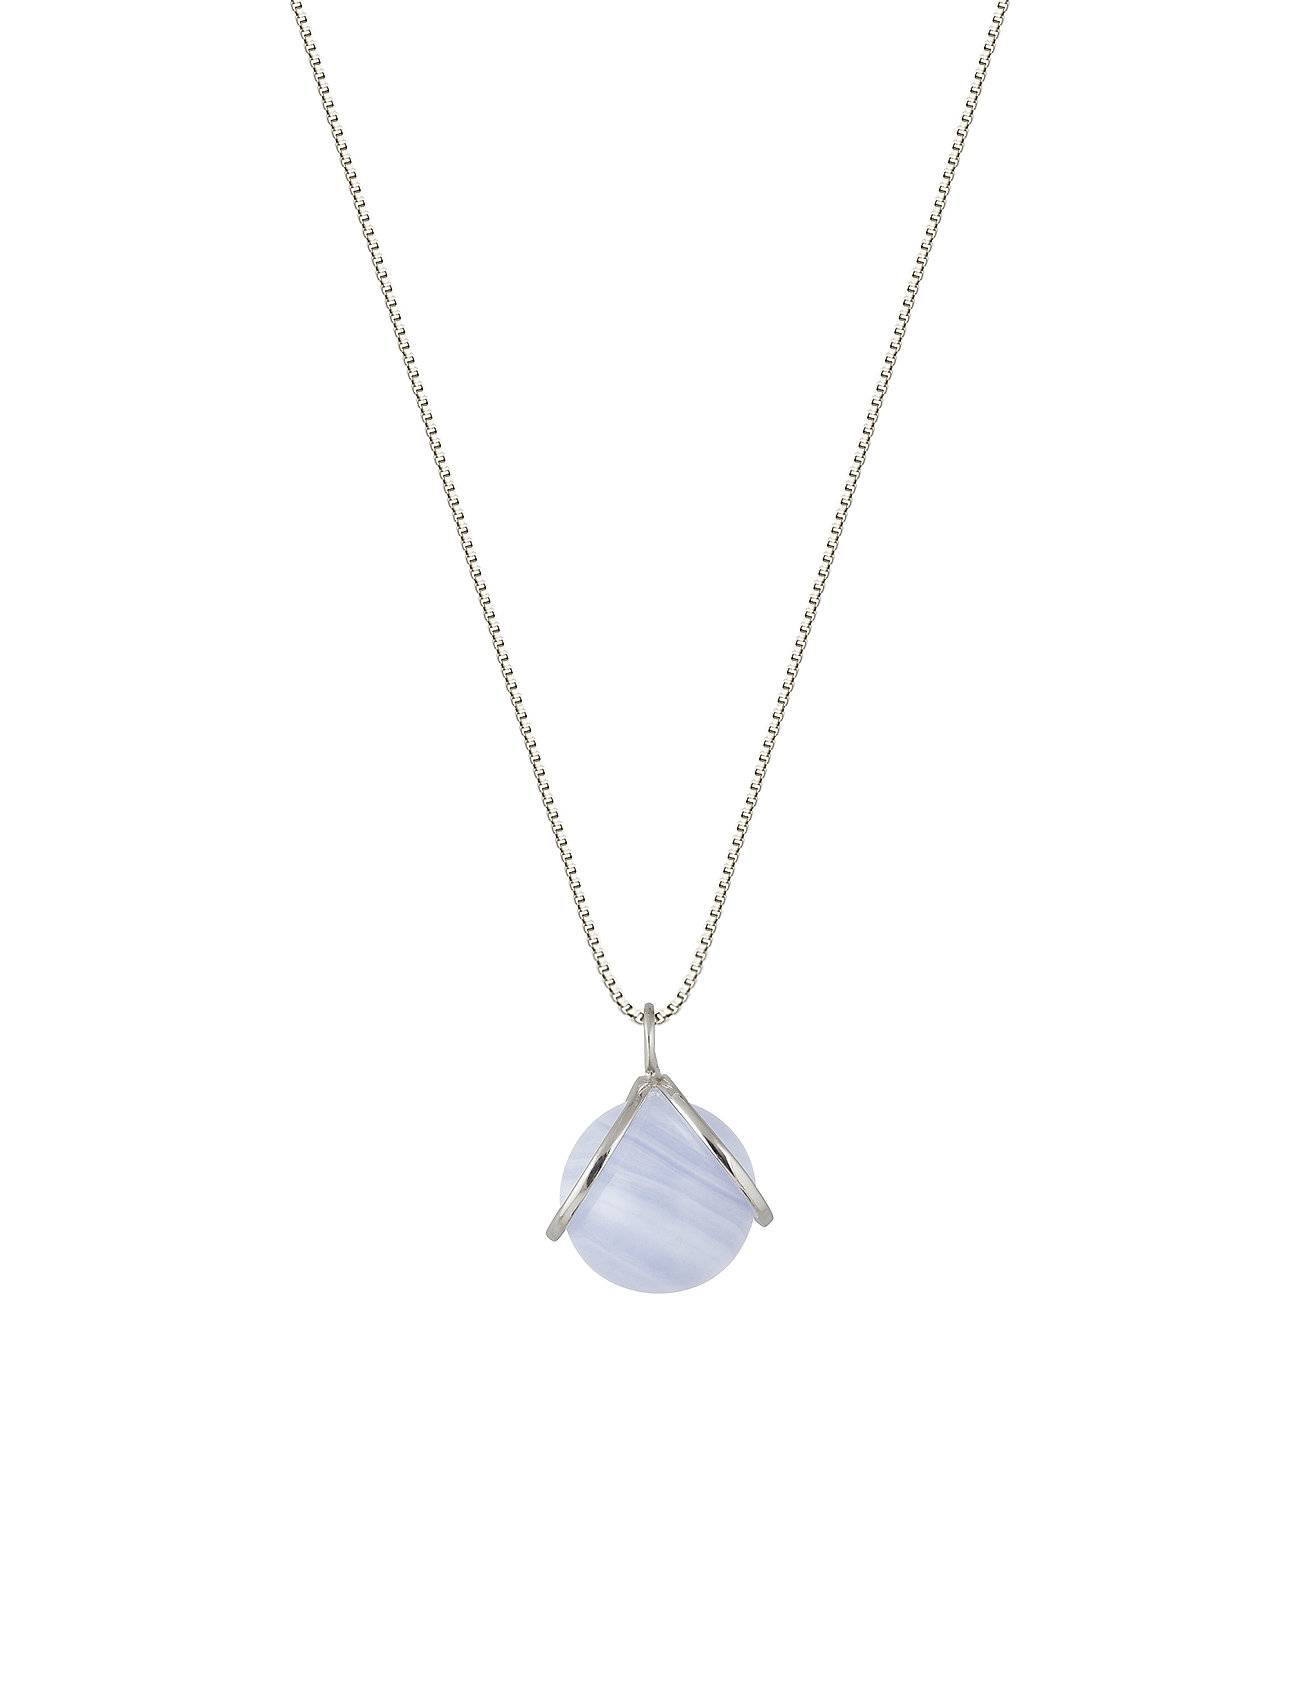 Syster P Planet Necklace Silver Blue Lace